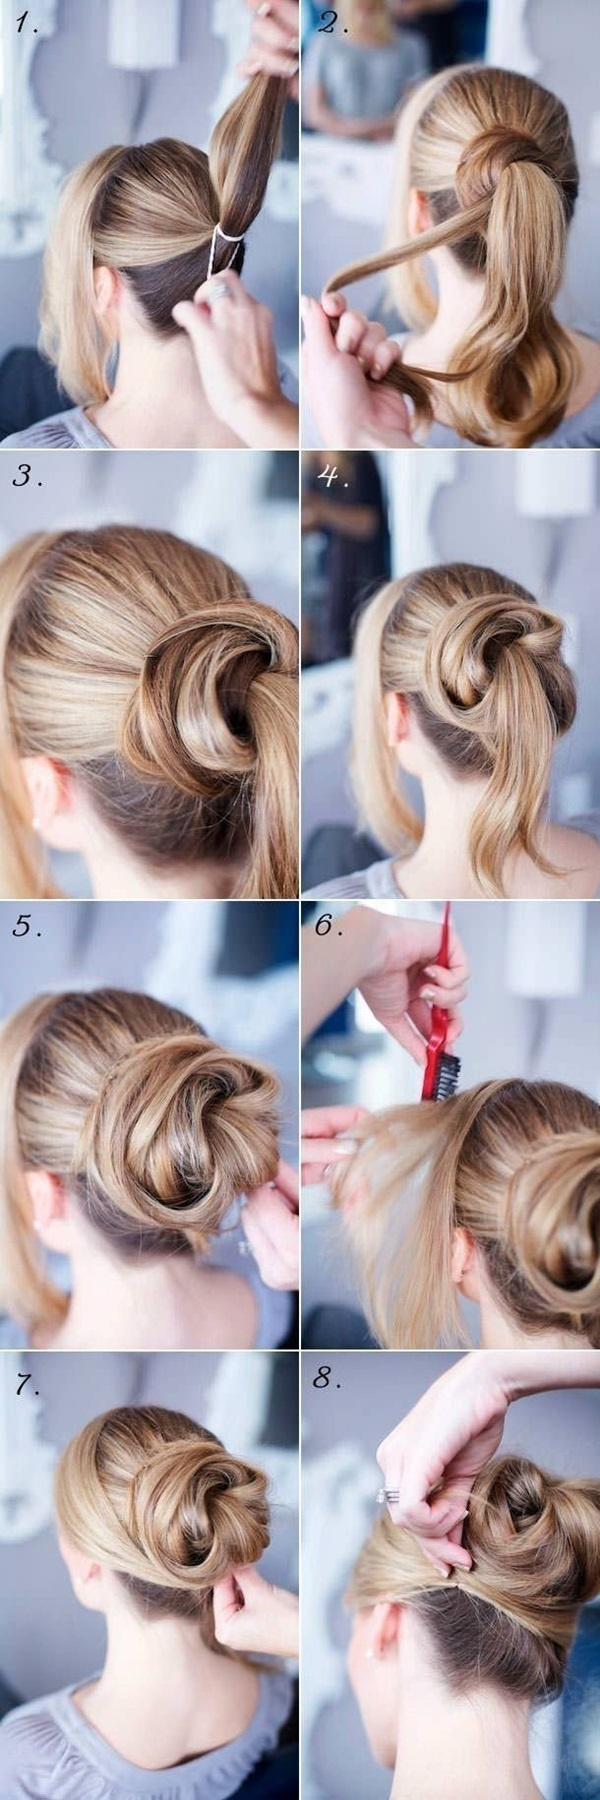 Easy Bun Hairstyles for Long Hair and Medium Hair1 (7)